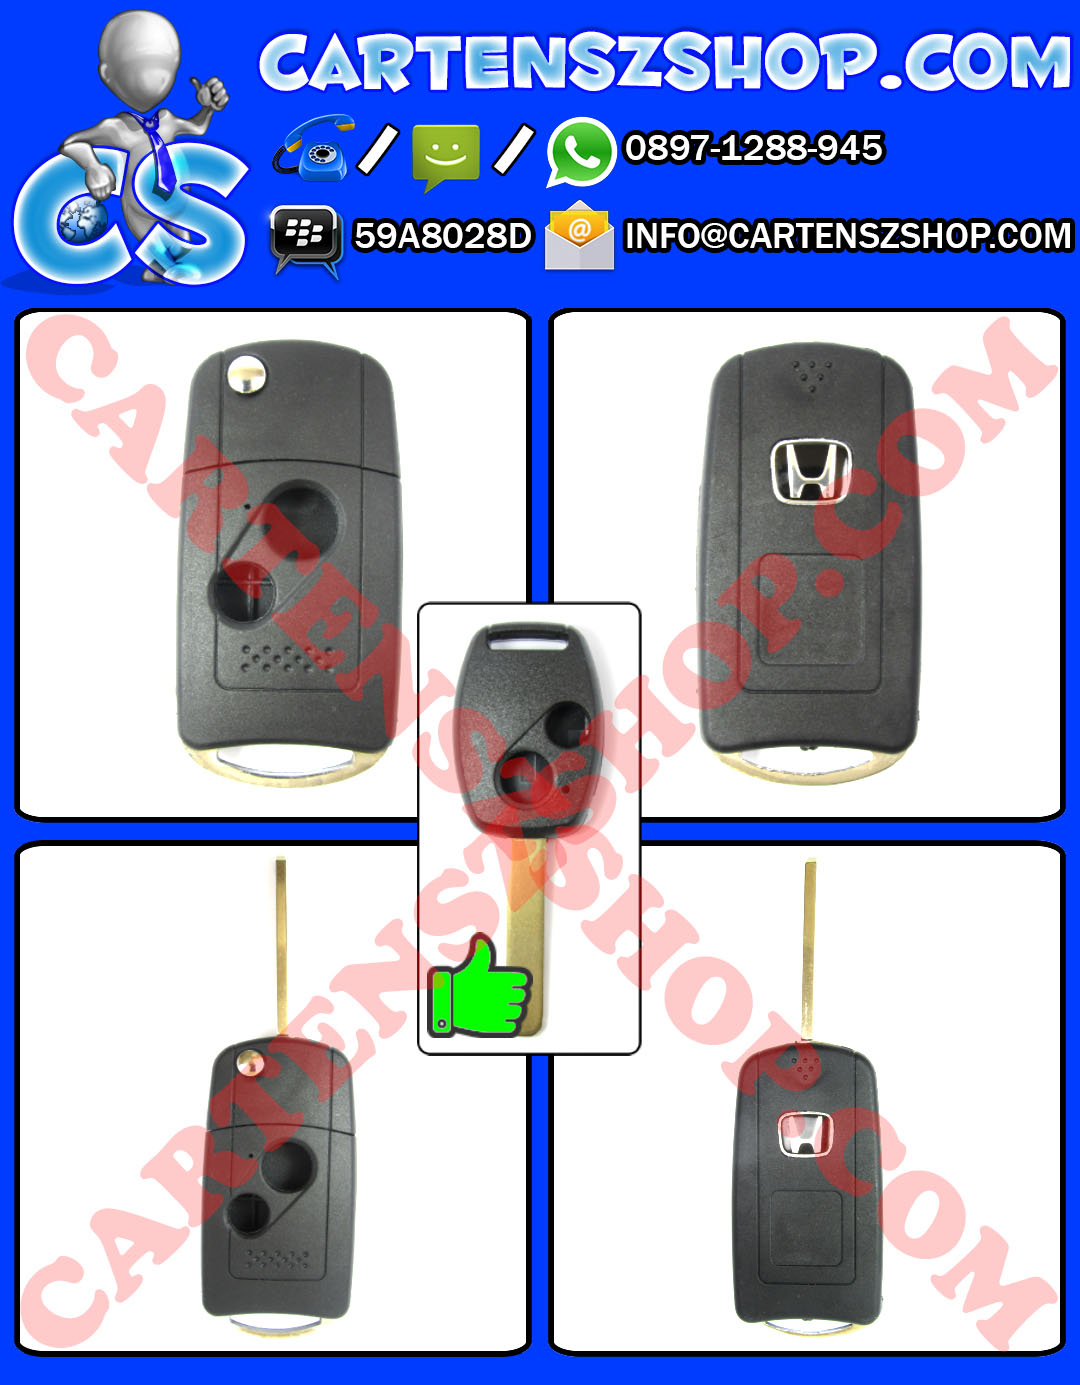 Casing Kunci Lipat / Flip Key 2 Tombol Mobil Honda Jazz, CRV, Civic, Freed, Brio, Mobilio, Accord, City, Dll